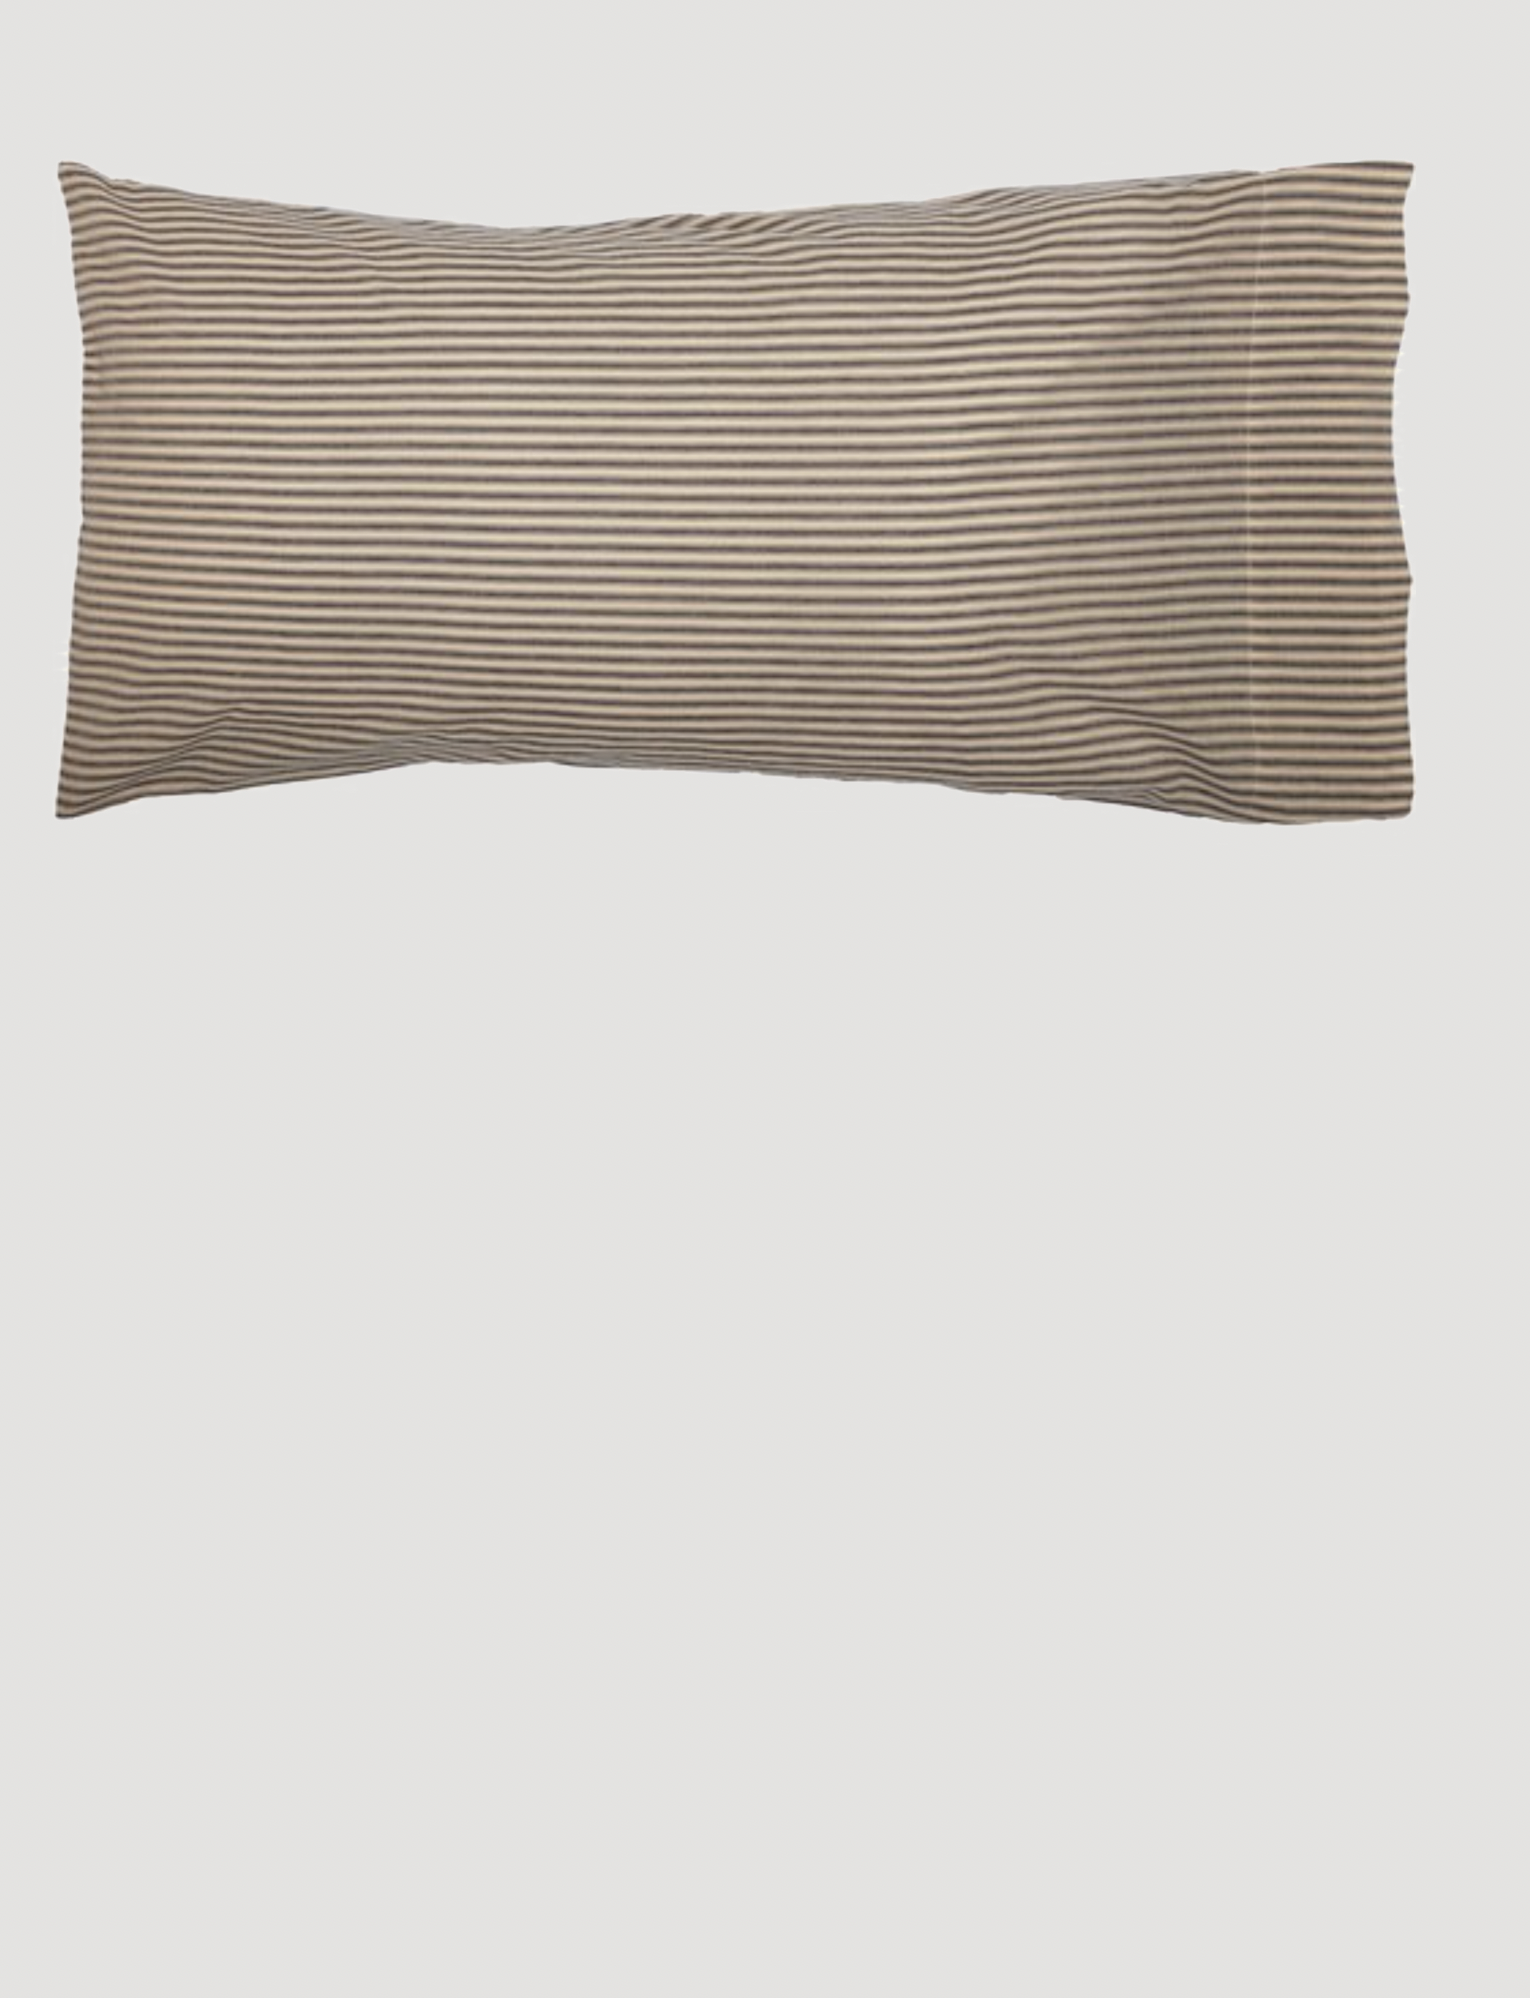 VHC Brands Sawyer Mill Charcoal Ticking Stripe Pillow Case Set of 2